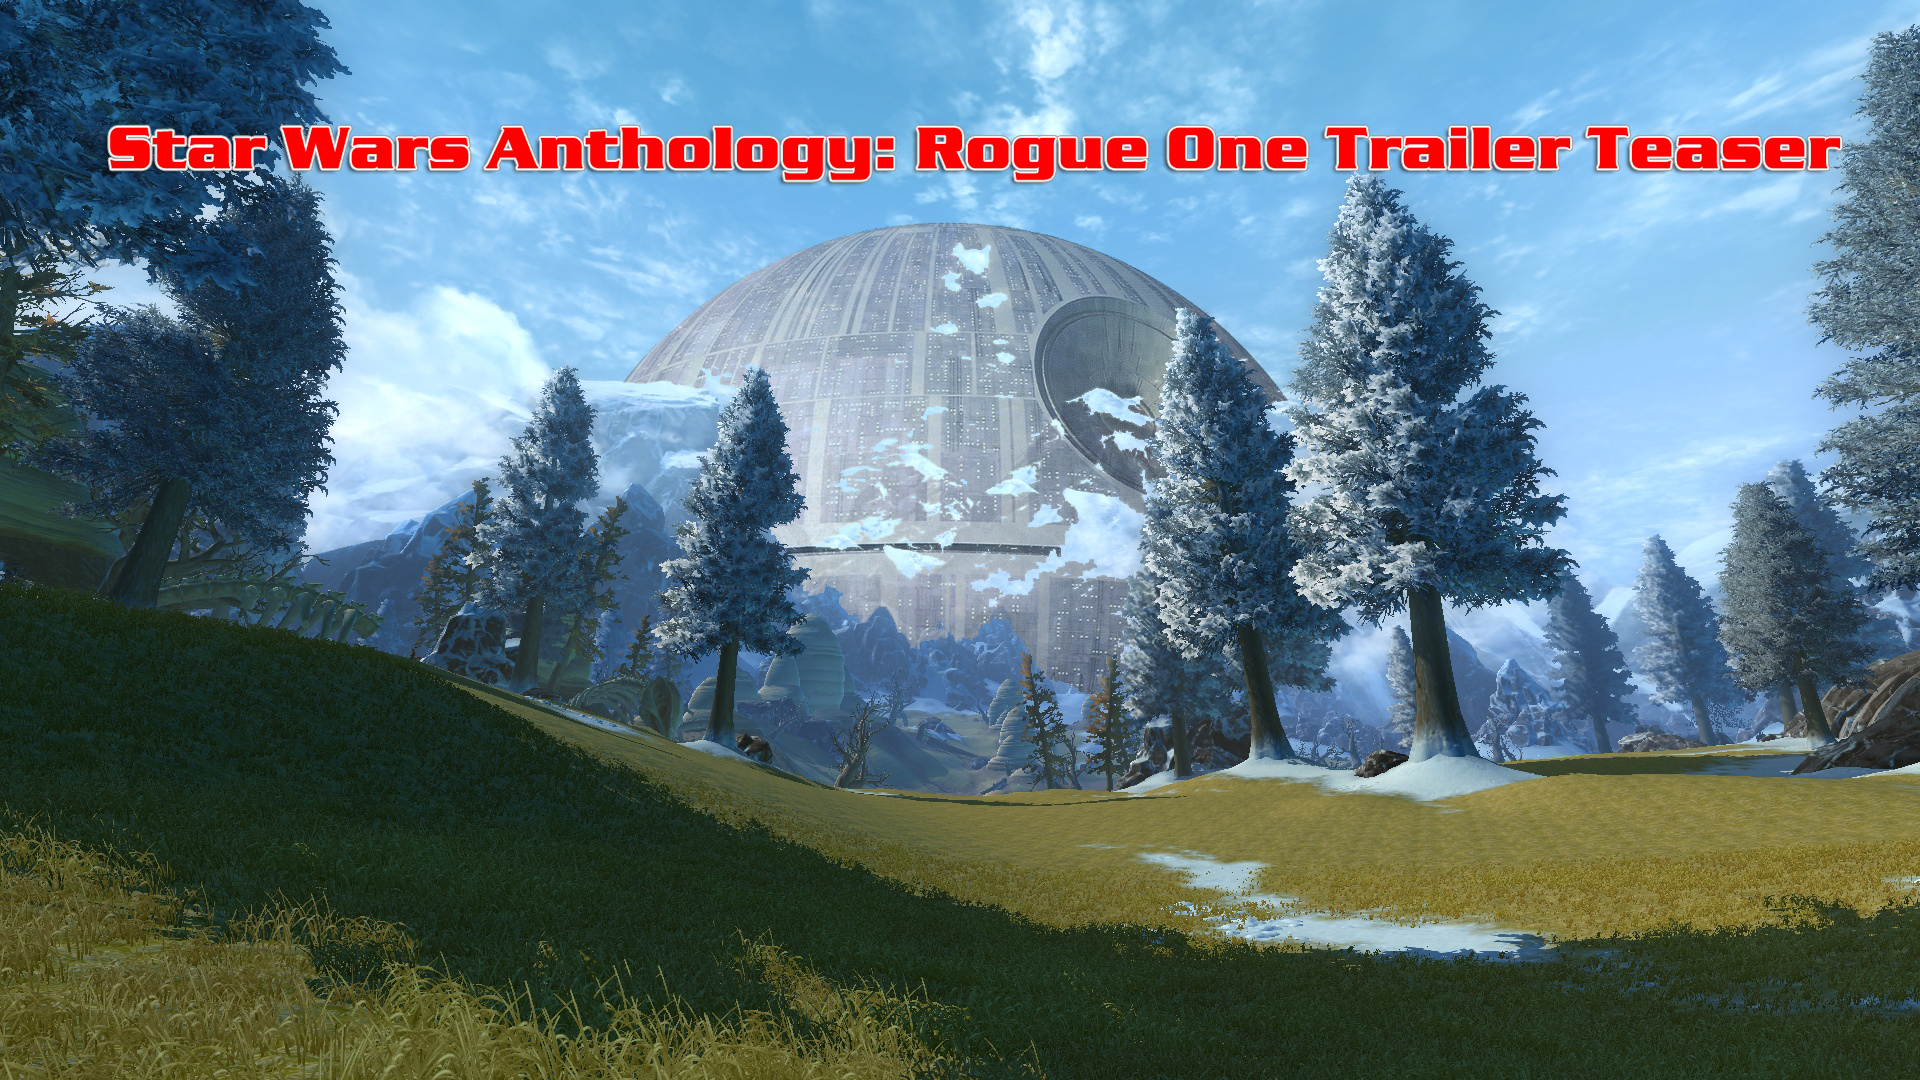 Movie Star Wars Anthology: Rogue One Online 2016 Hd